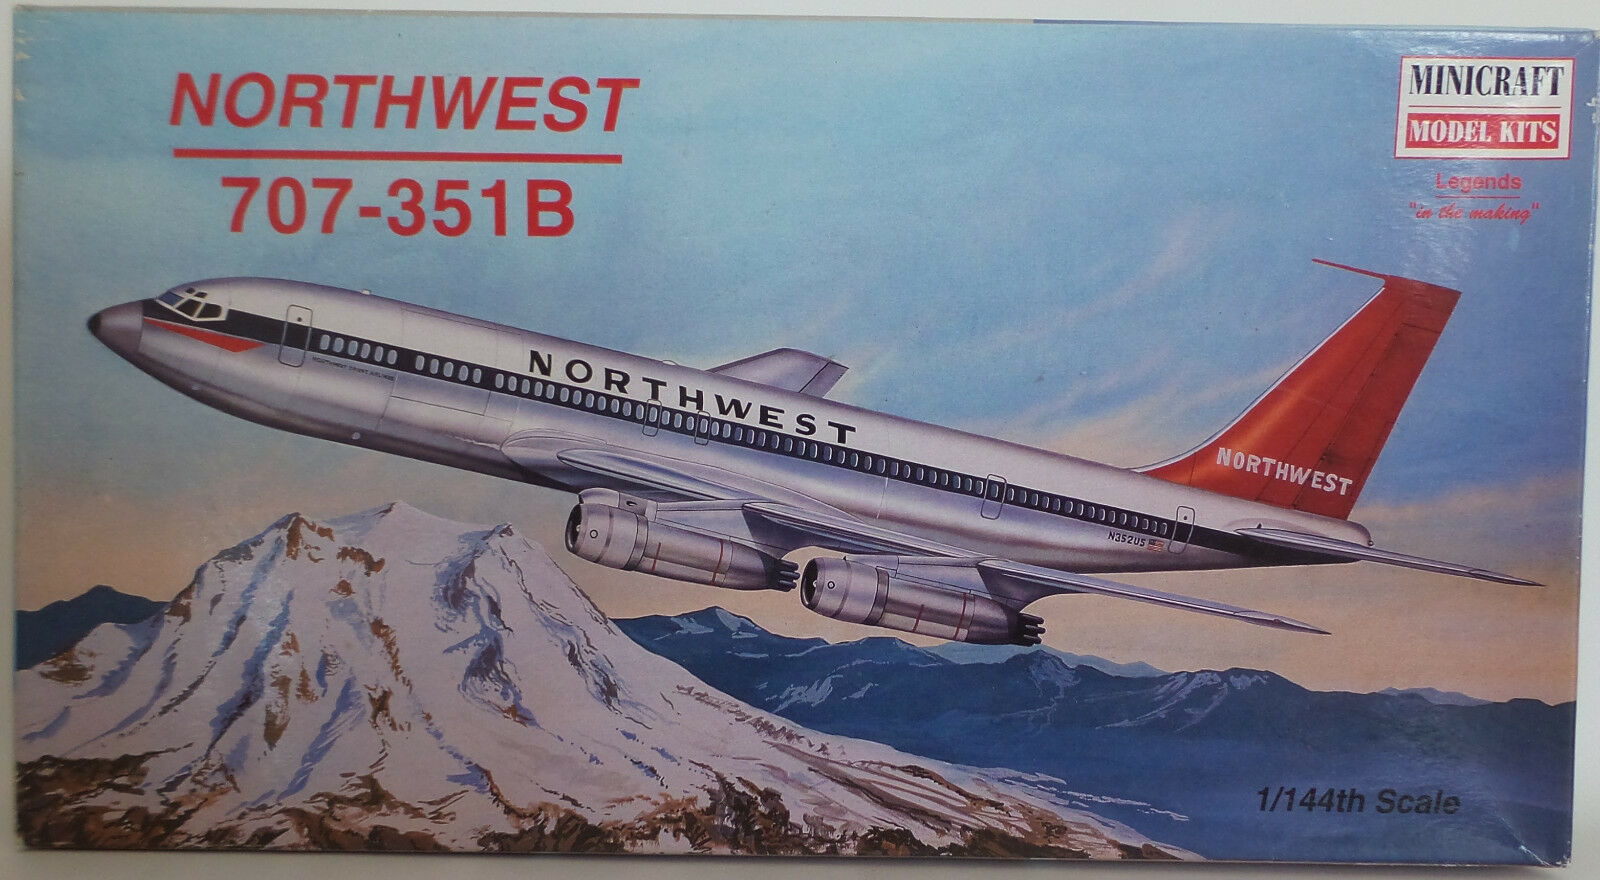 AVIATION   NORTHWEST 707-351-B 1 144 SCALE MODEL KIT MADE BY MINICRAFT